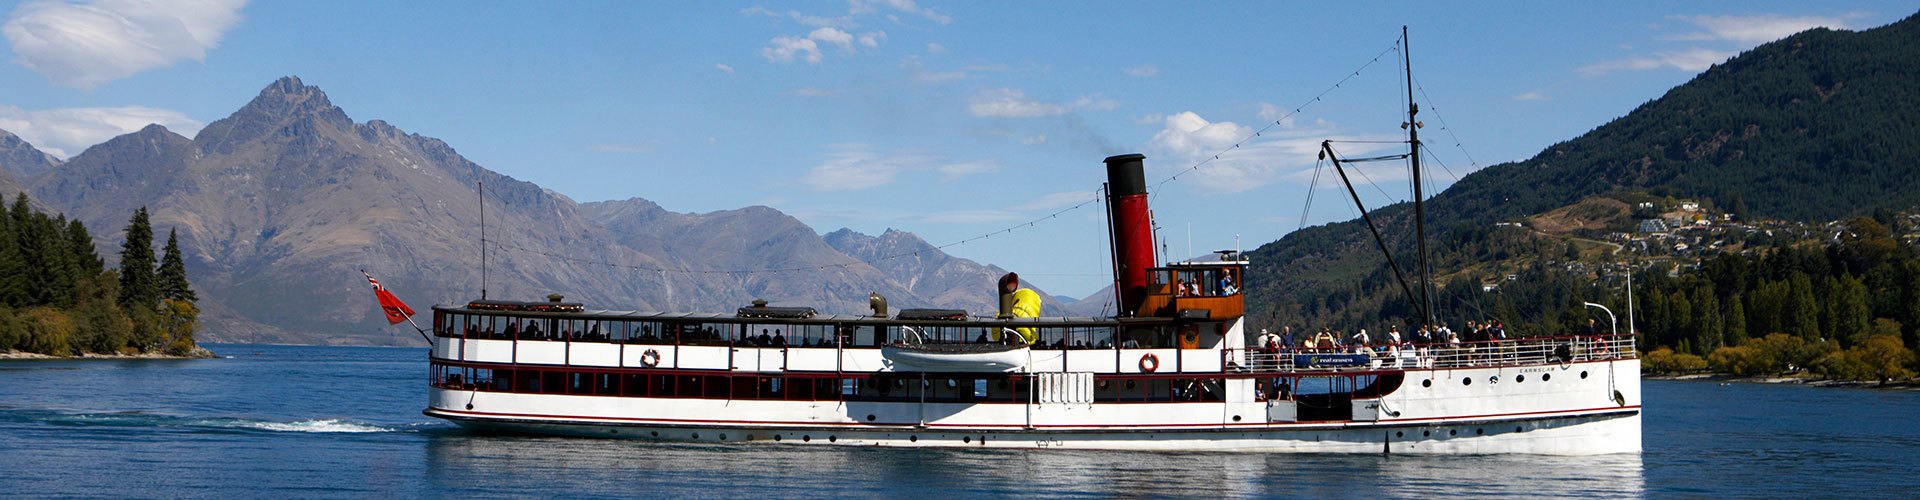 Steamship tour on Lake Wakatipu, Queenstown NZ